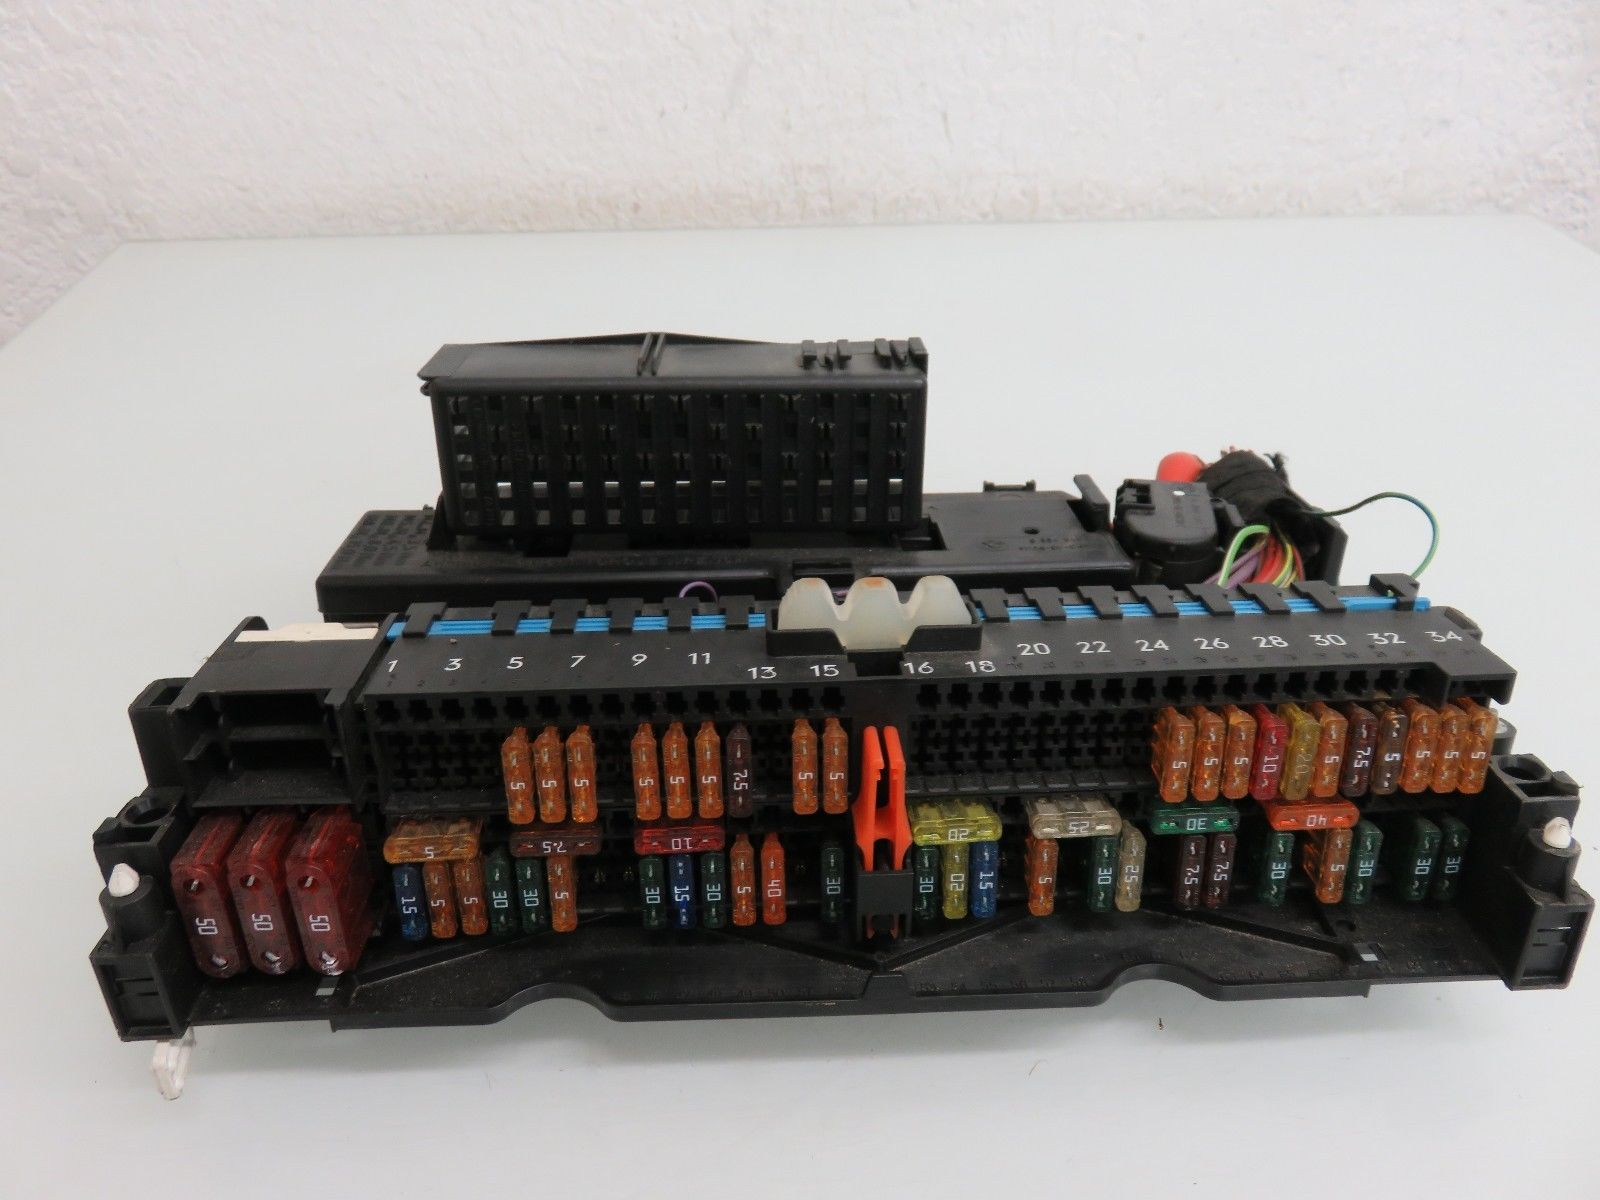 1c915a94 ed6e 4288 902d 129f9a6c57ac 01 05 bmw e46 325i 325xi electric fuse relay box oem , 8364540 BMW 325I Fuse Box Diagram at soozxer.org